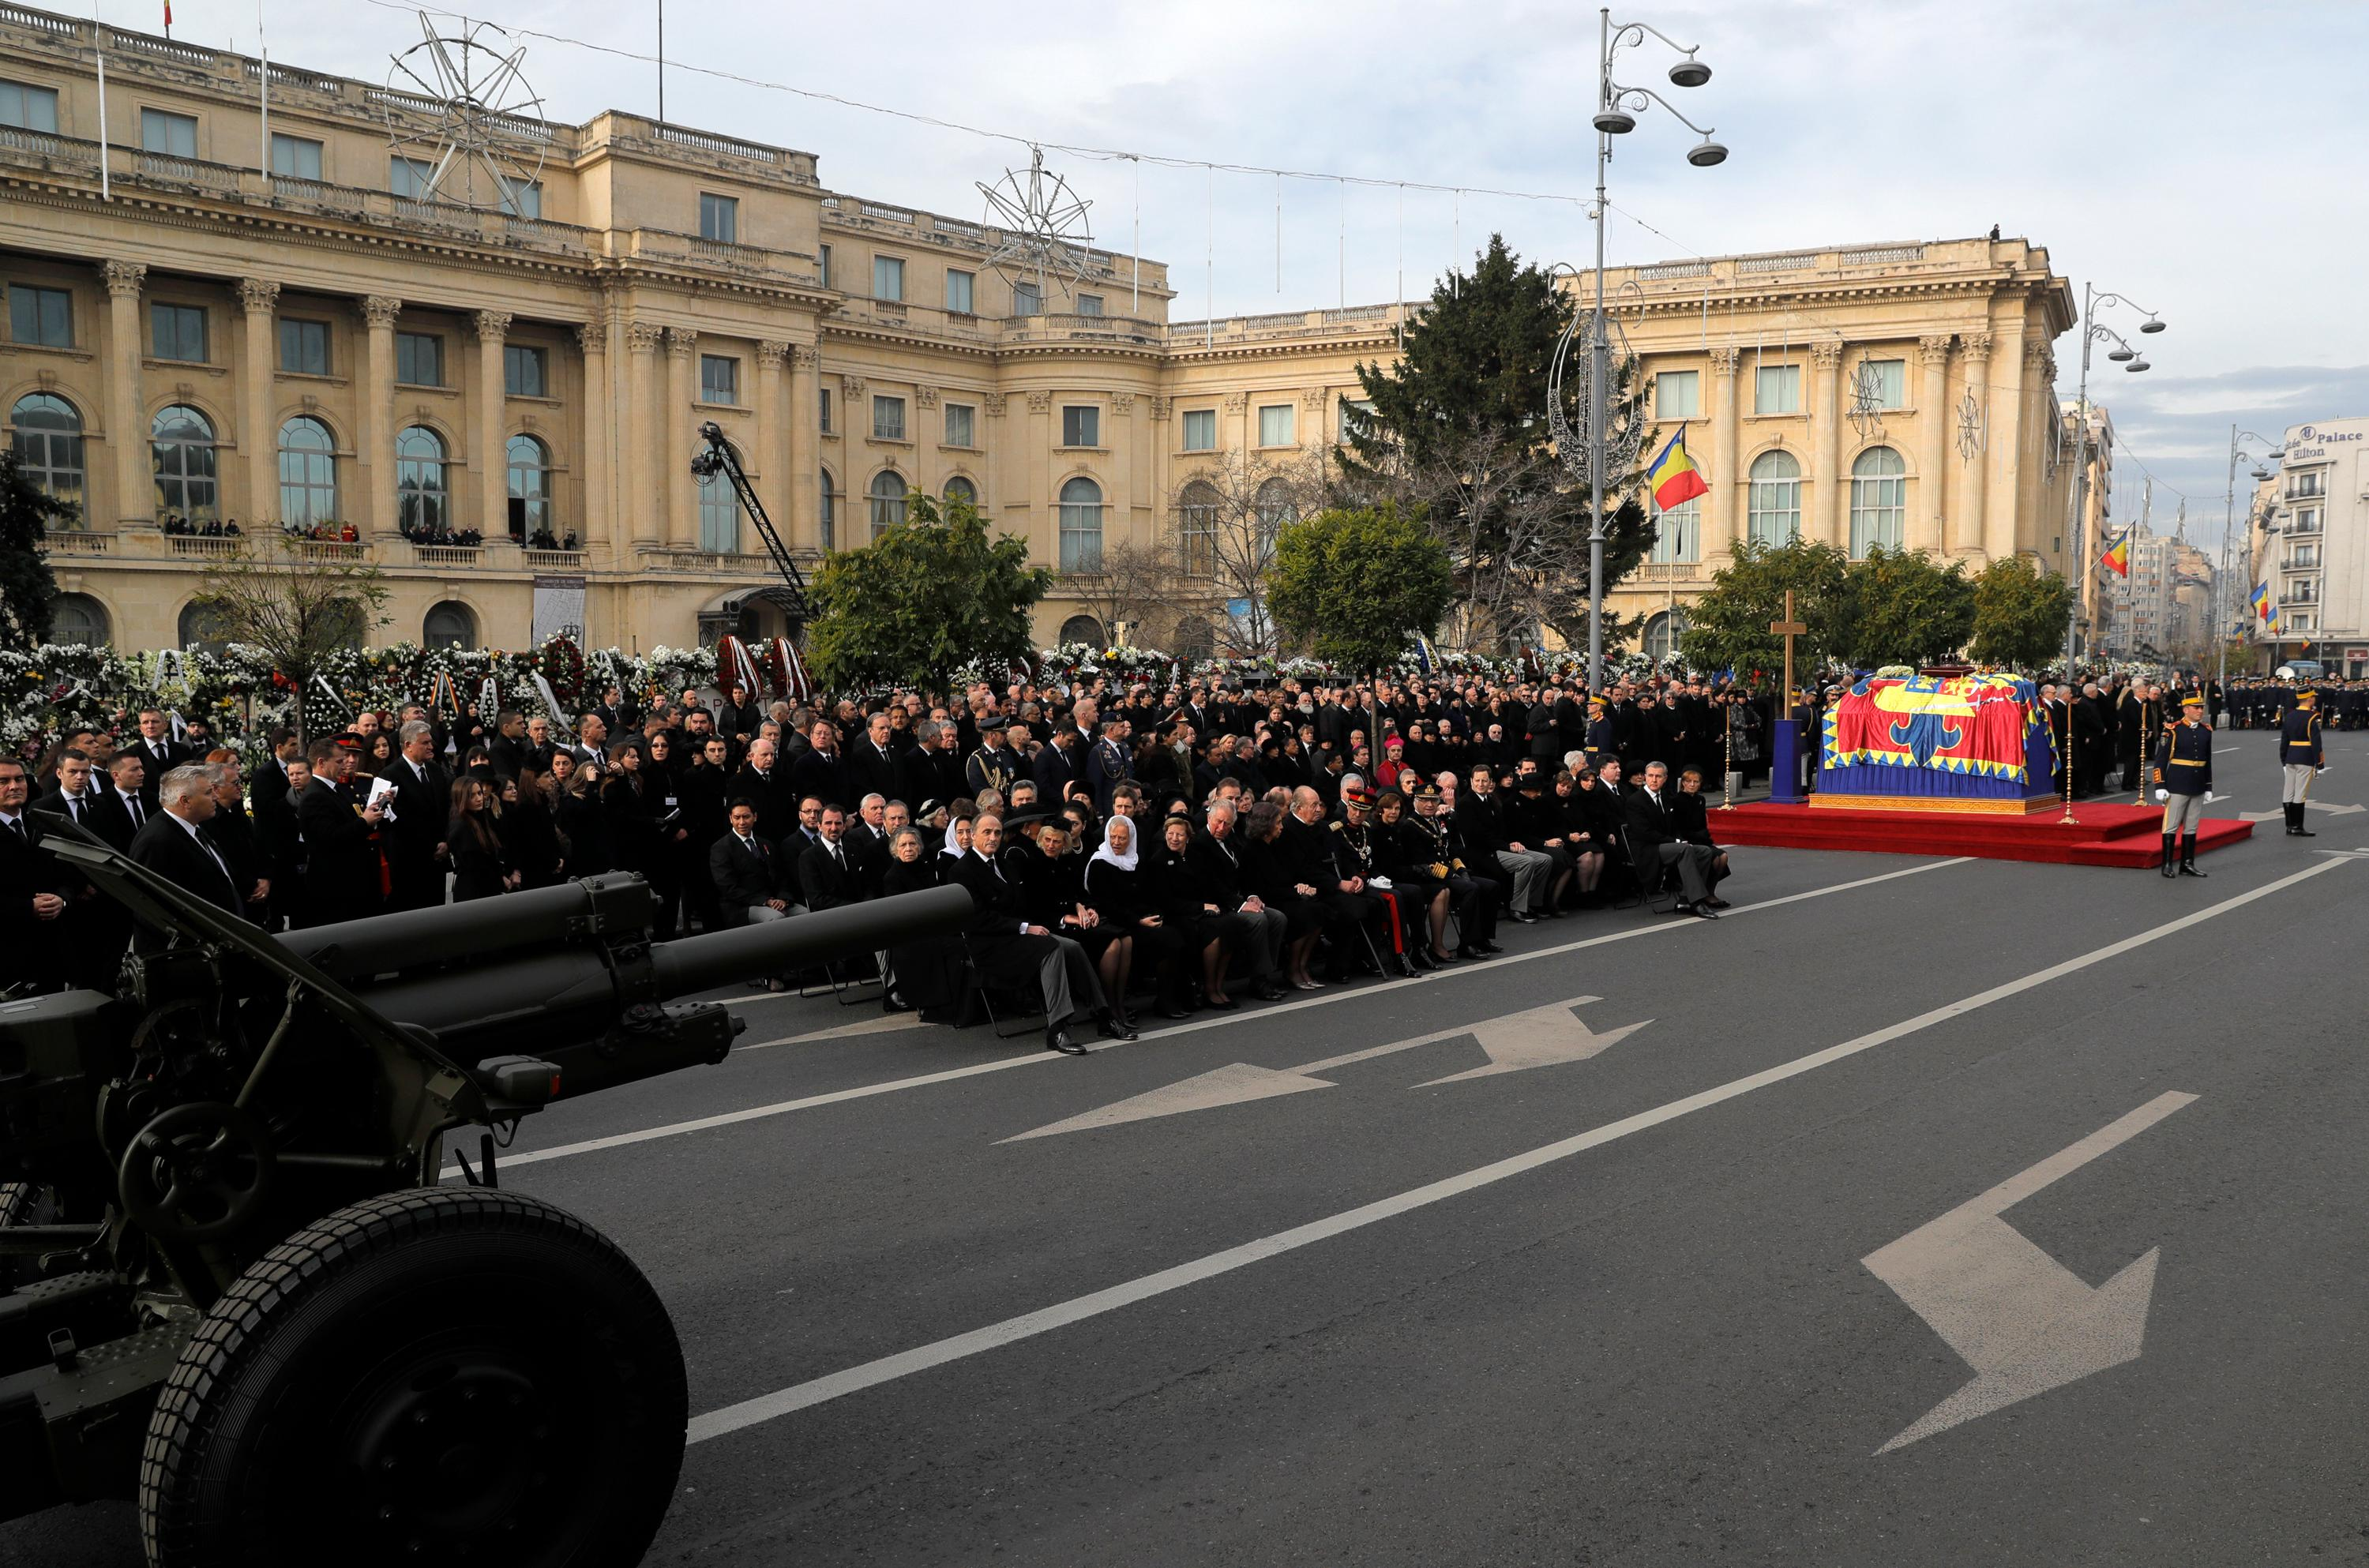 Honor guard next to the coffin of the late Romanian King Michael during the funeral ceremony outside the former royal palace in Bucharest, Romania, Saturday, Dec.16, 2017. Thousands waited in line to pay their respects to Former King Michael, who ruled Romania during WWII, and died on Dec. 5, 2017, aged 96, in Switzerland. (AP Photo/Vadim Ghirda)